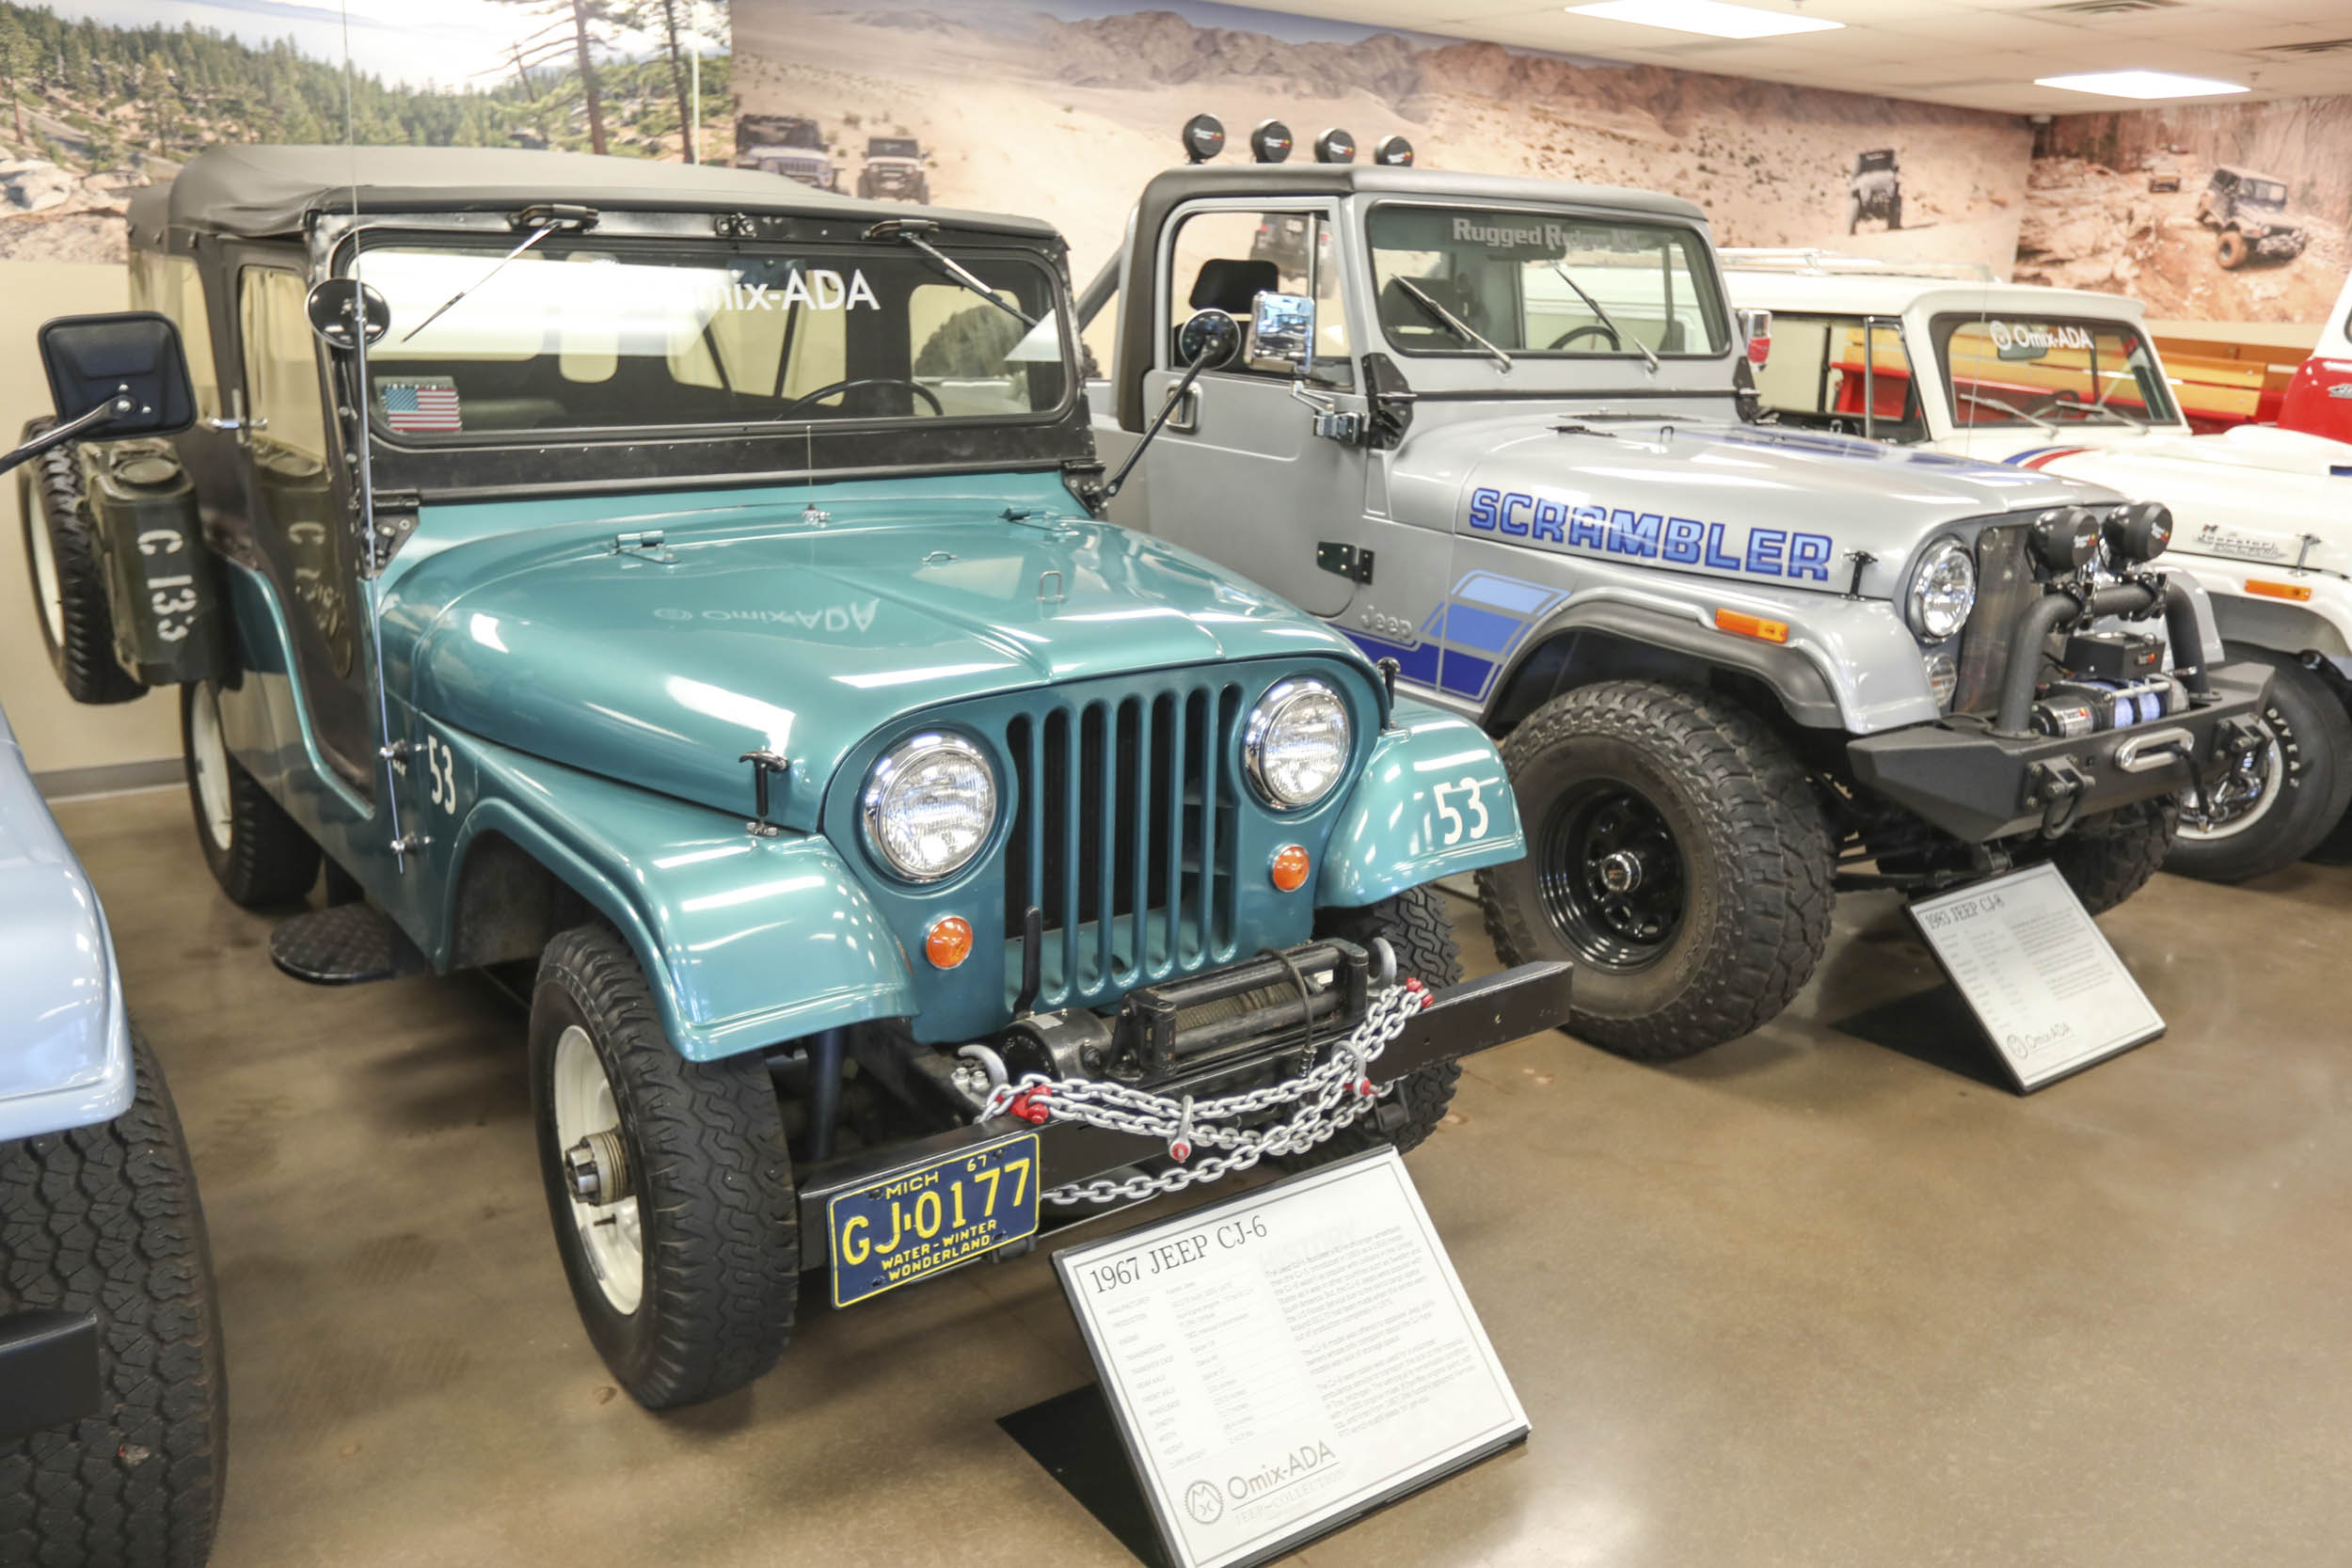 Before the Wrangler Unlimited, there were the CJ-6 and CJ-8, long-wheelbase versions of the CJ-5 and CJ-7, respectively.